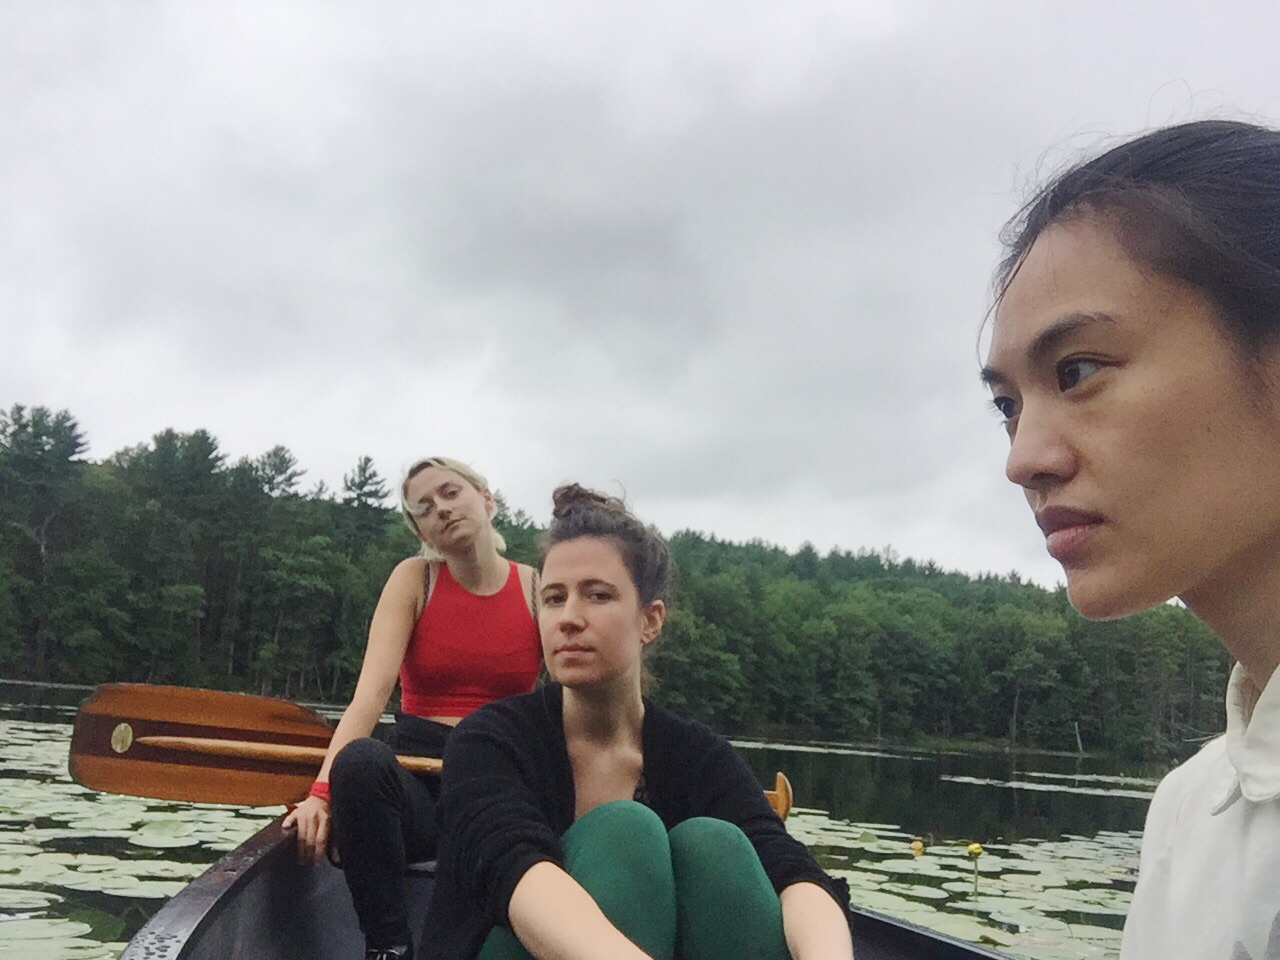 Remember what I said about canoeing?